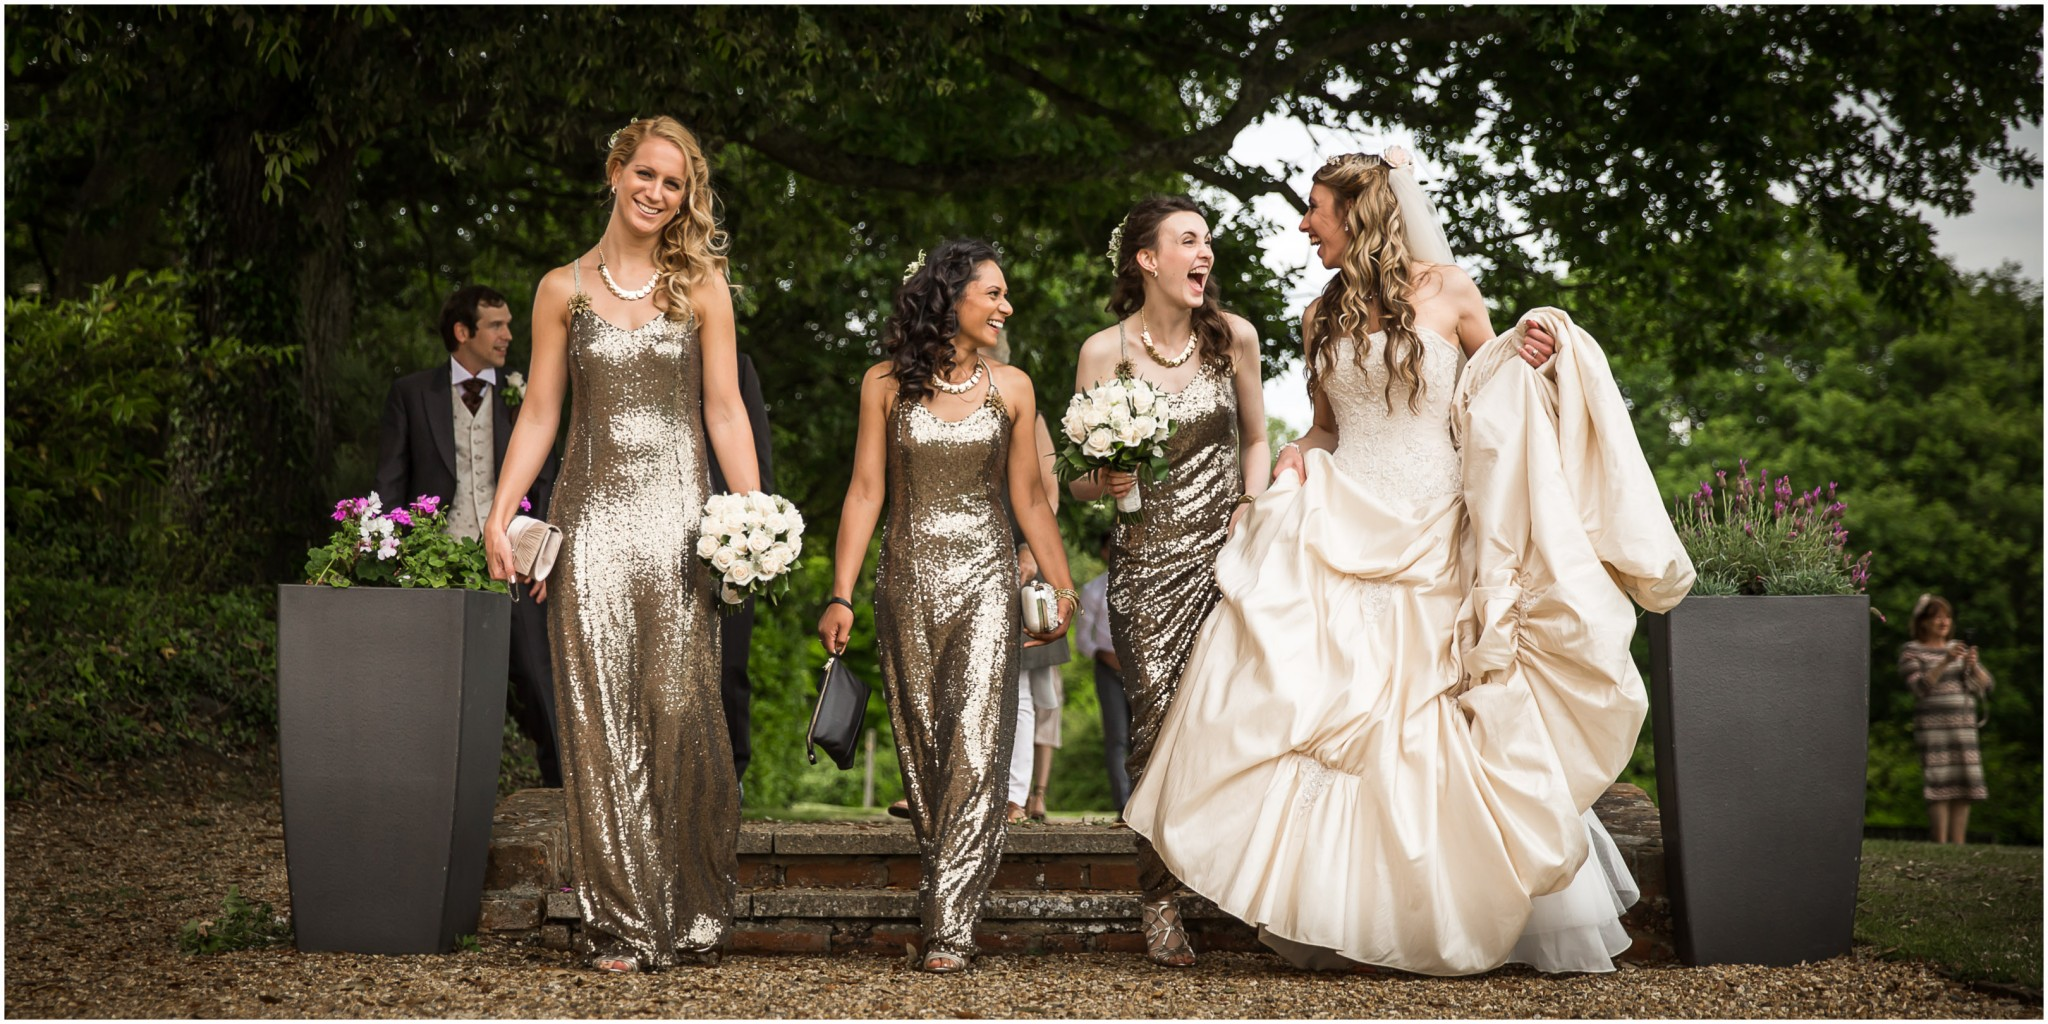 Highfield Park Wedding Photography Bride with Bridesmaids